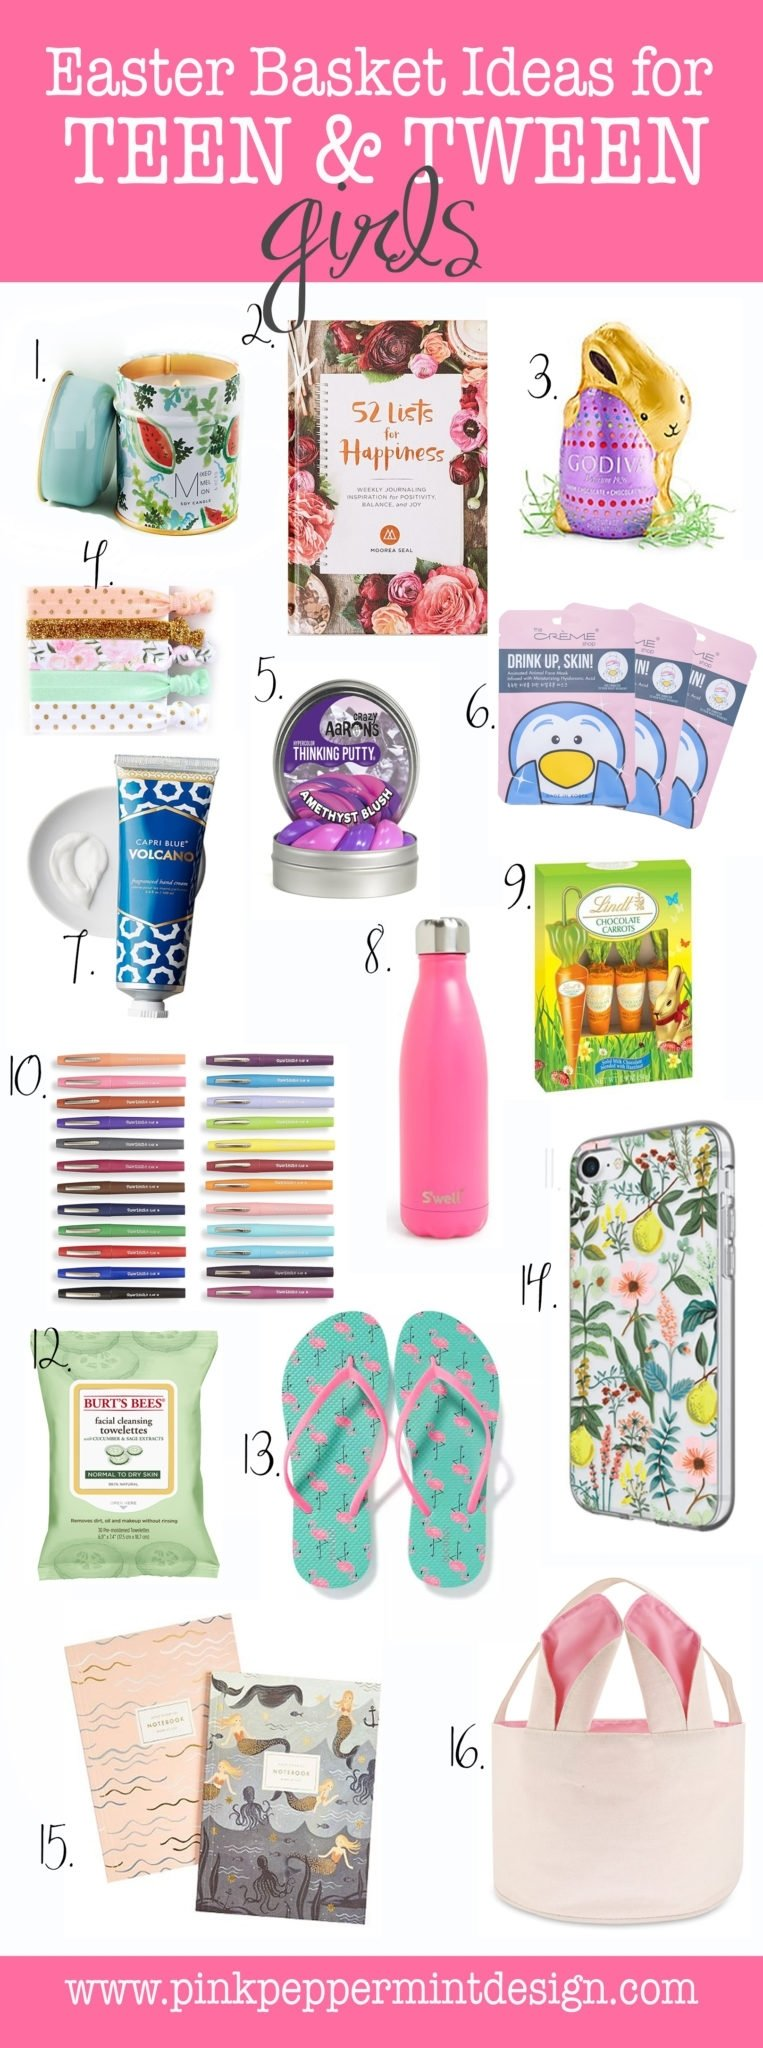 the best easter basket ideas for a teenage girl (and tweens) - pink